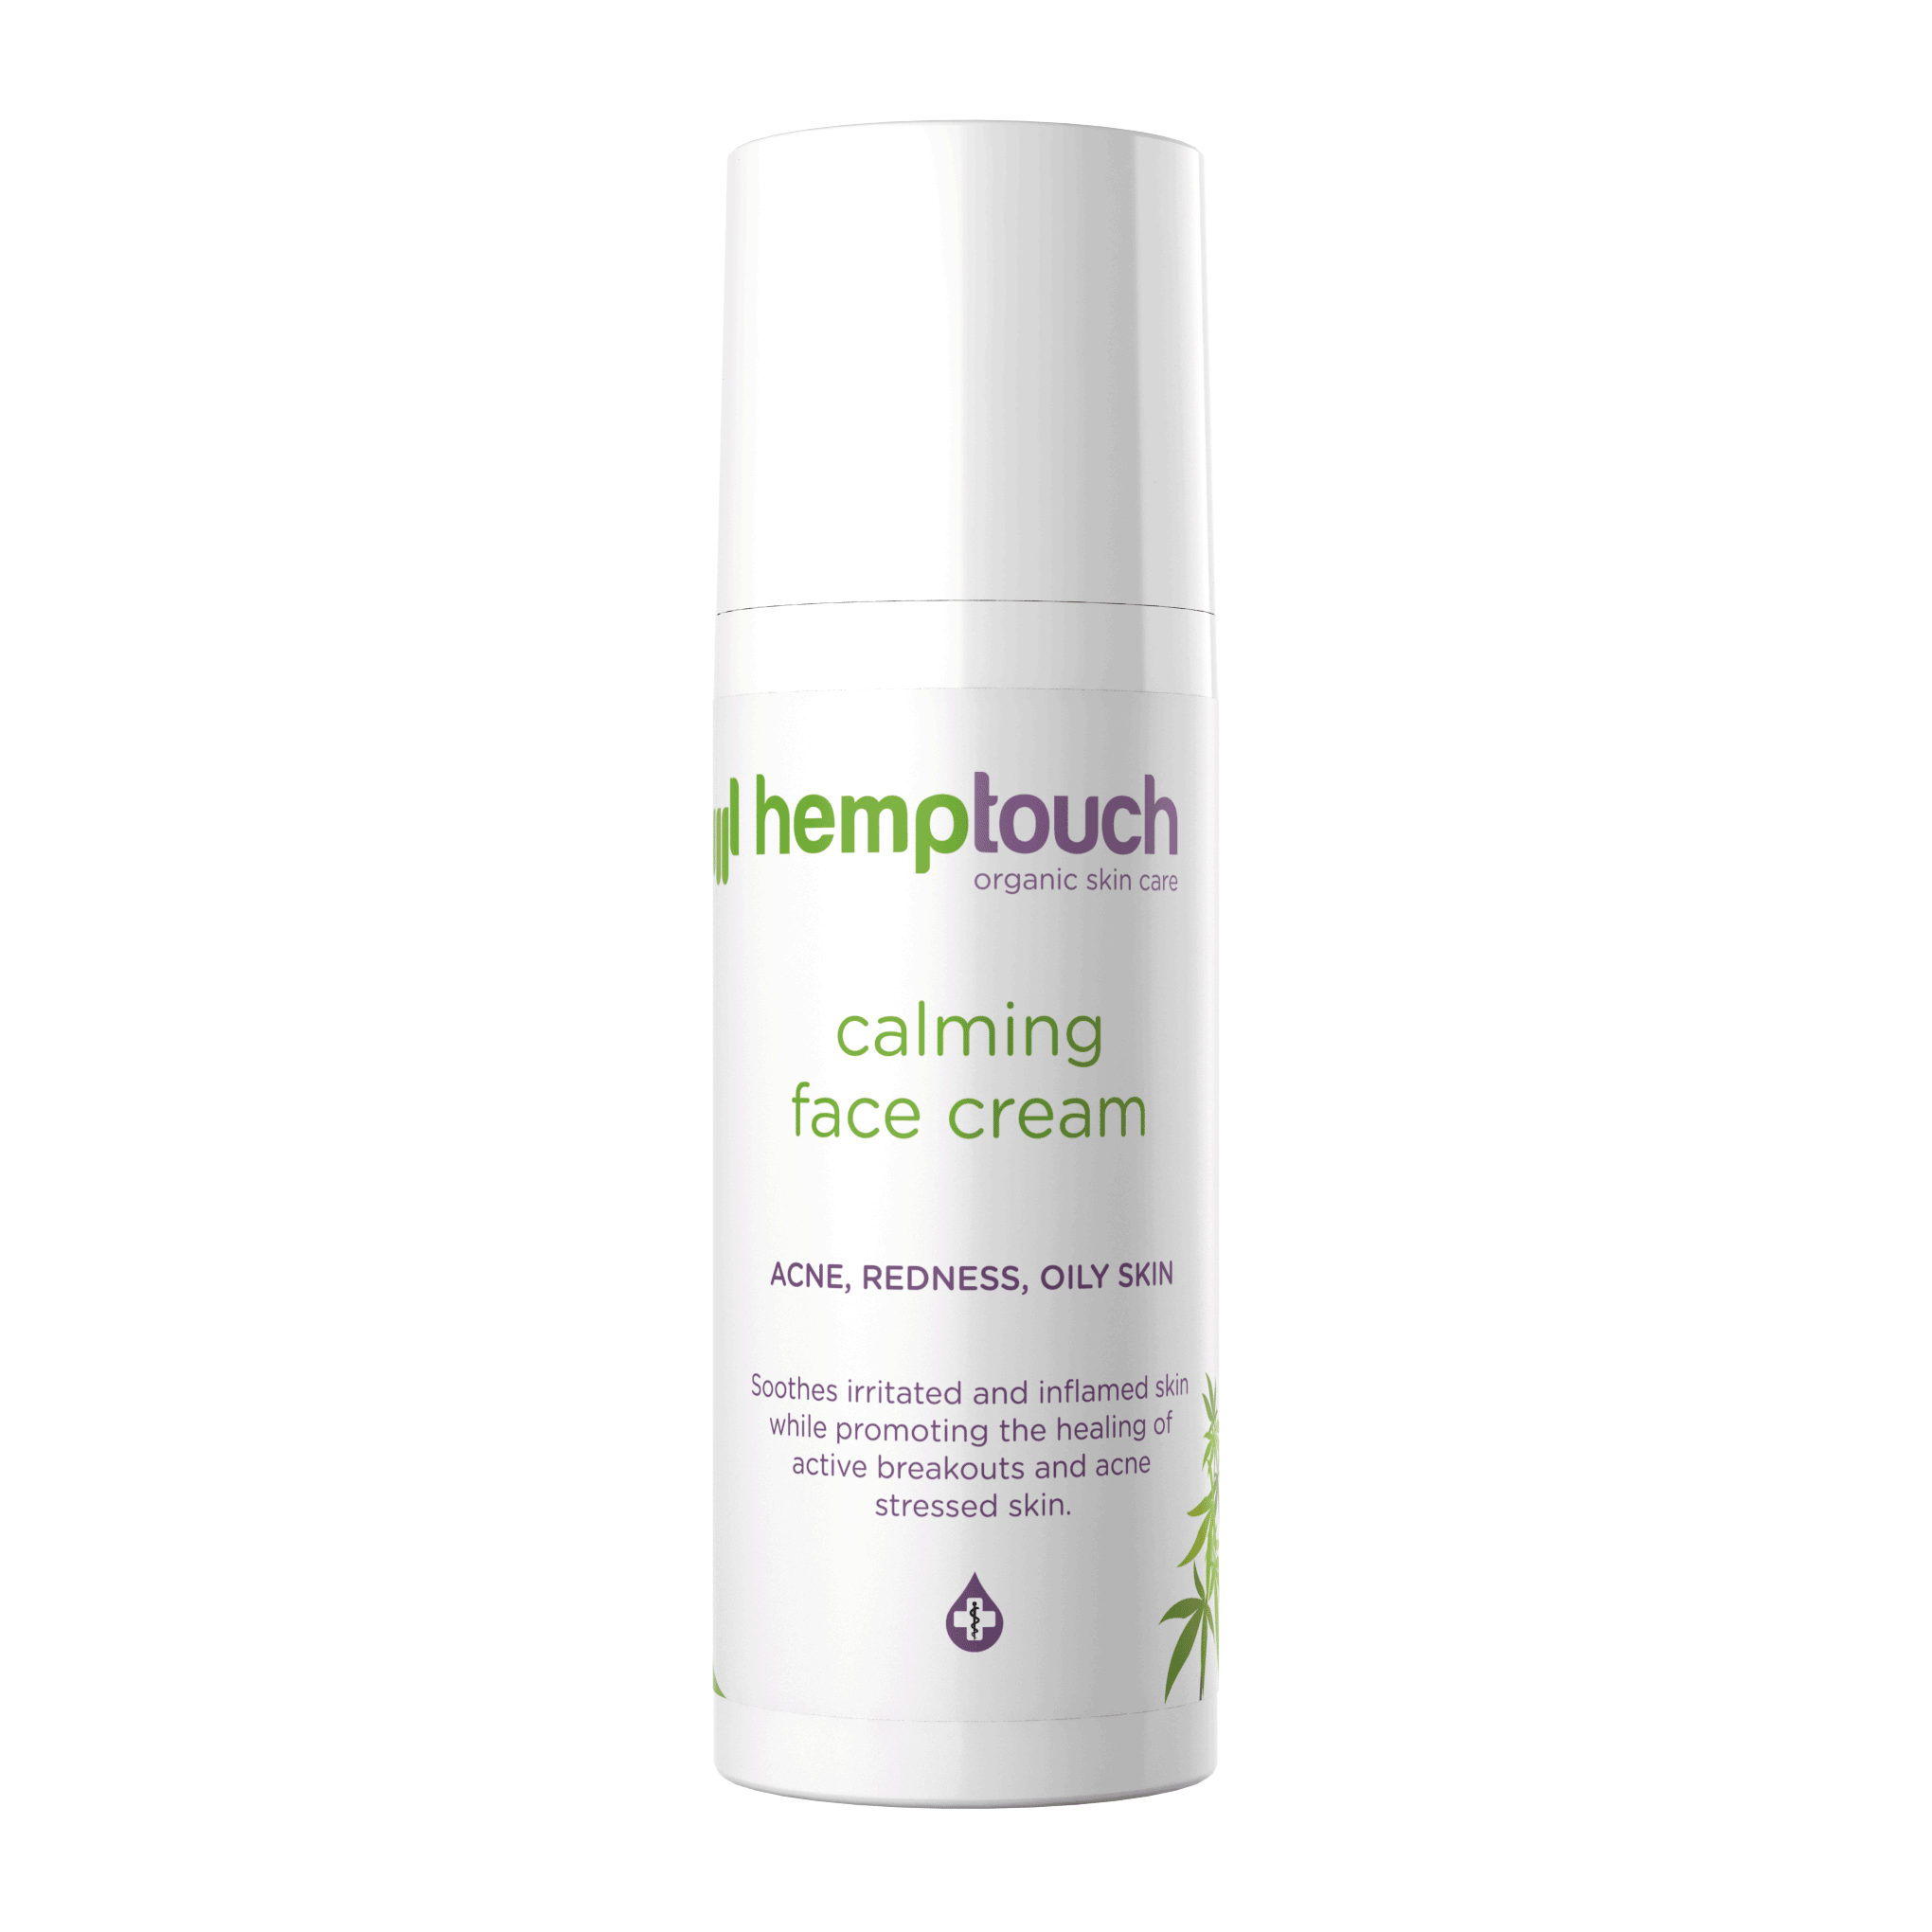 hemptouch face cream – Eatonslater.com Health food & online health store